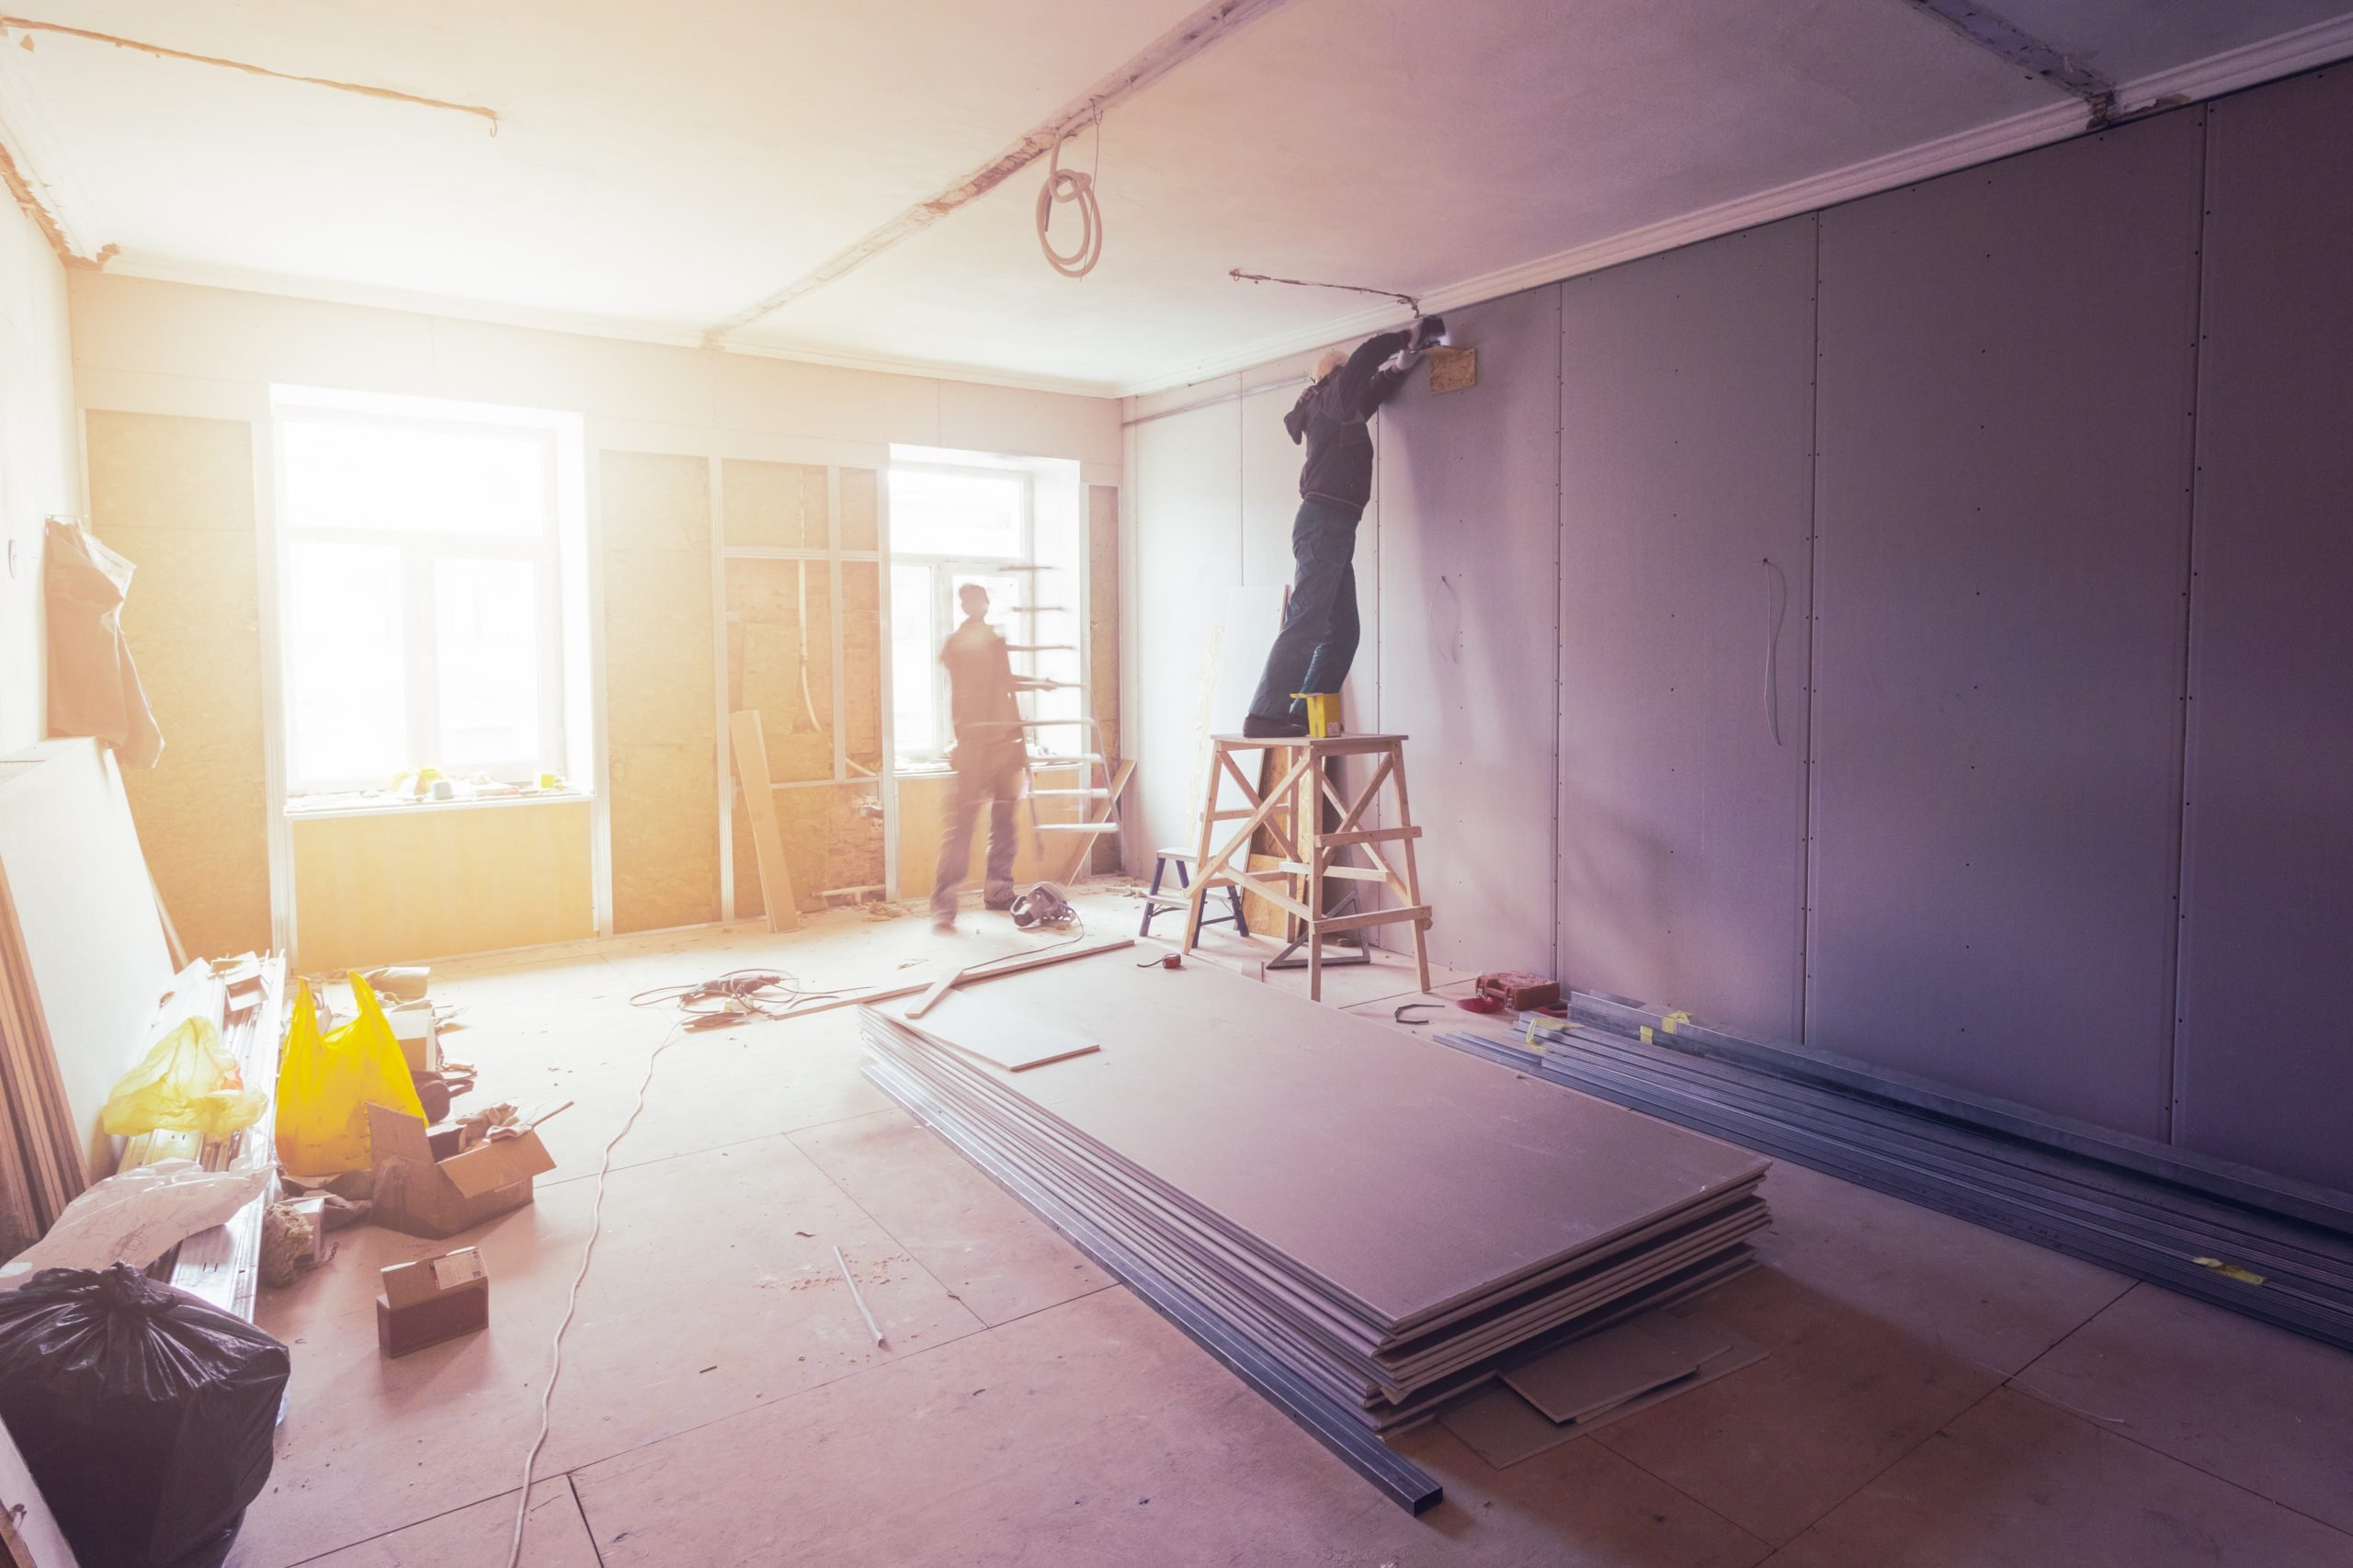 Implementing Fire Safety and Alarm Systems While Renovating Your Home